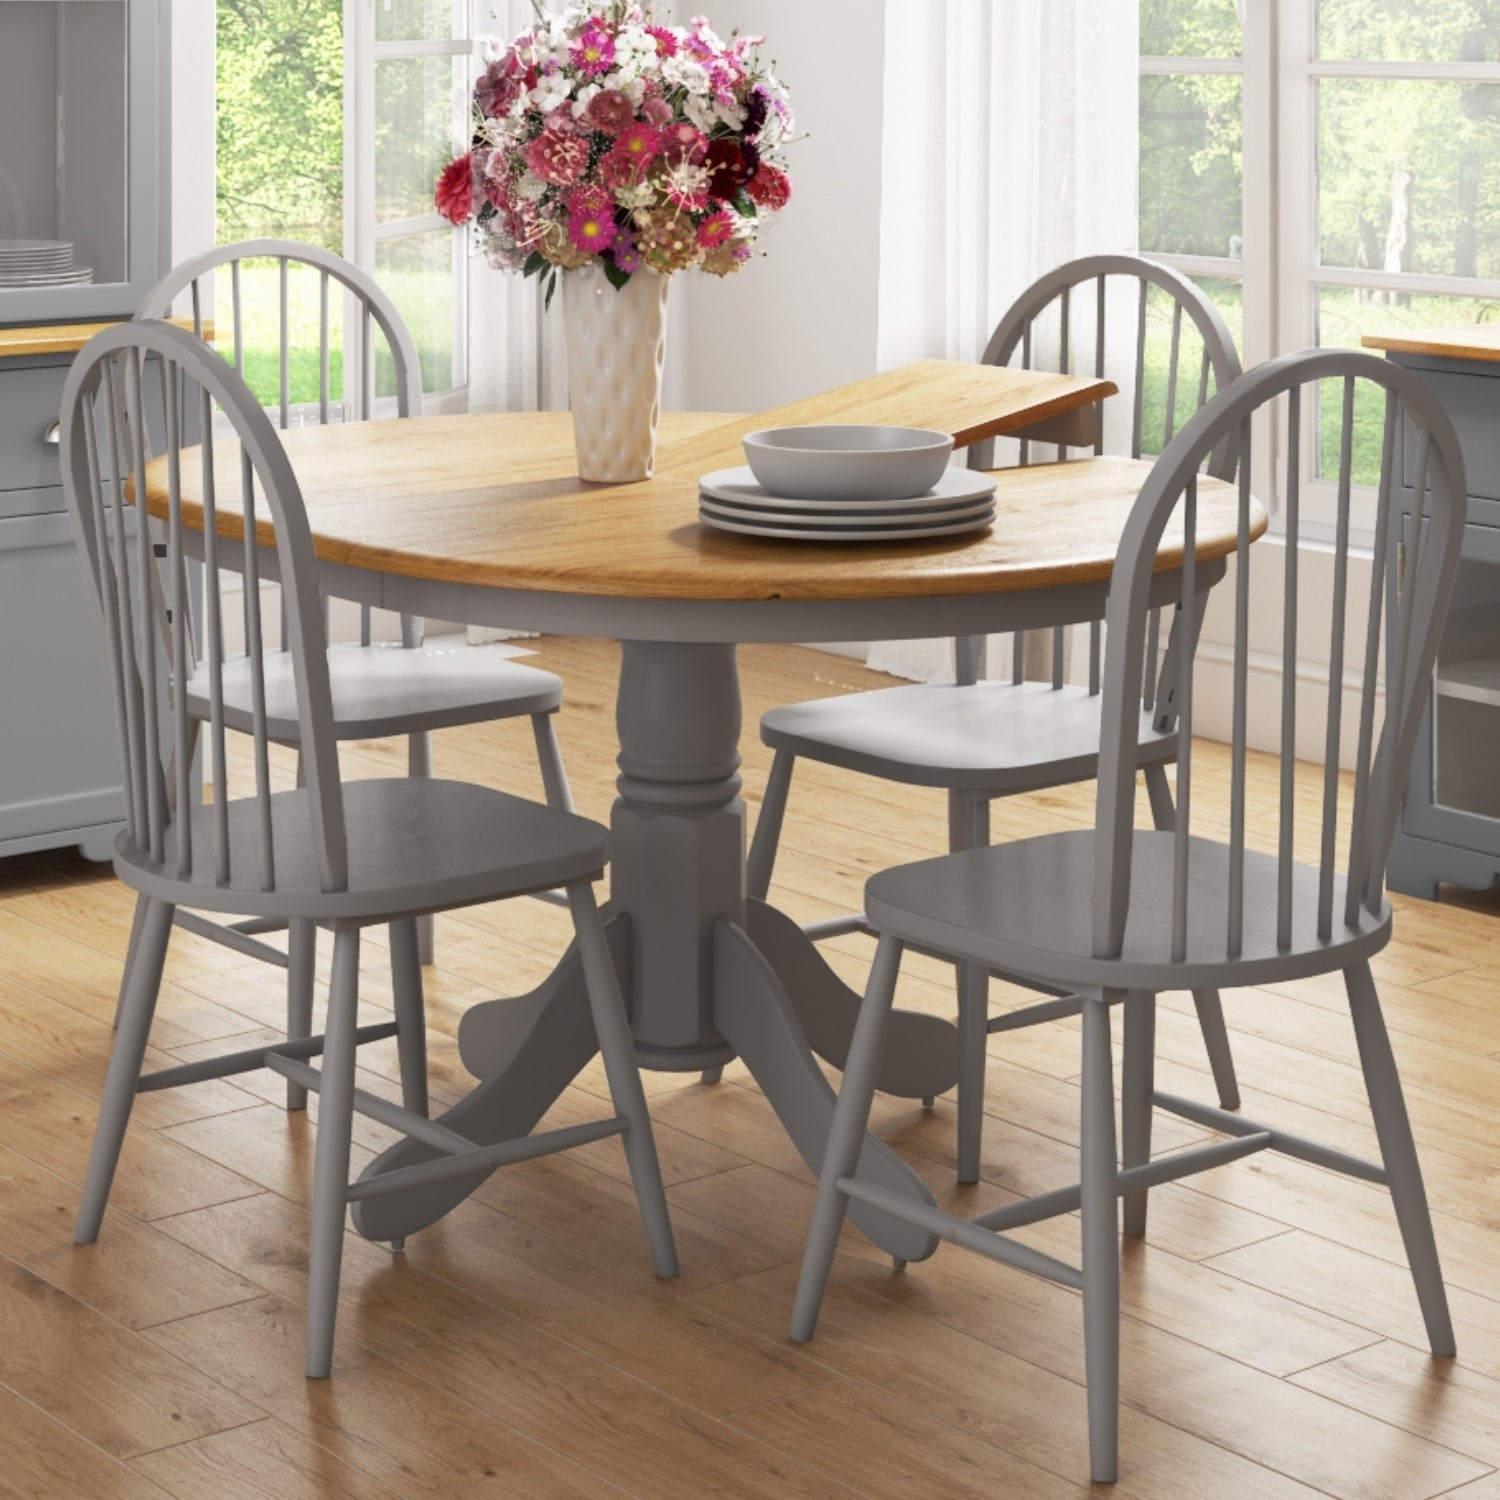 round extendable table with chairs> OFF 9